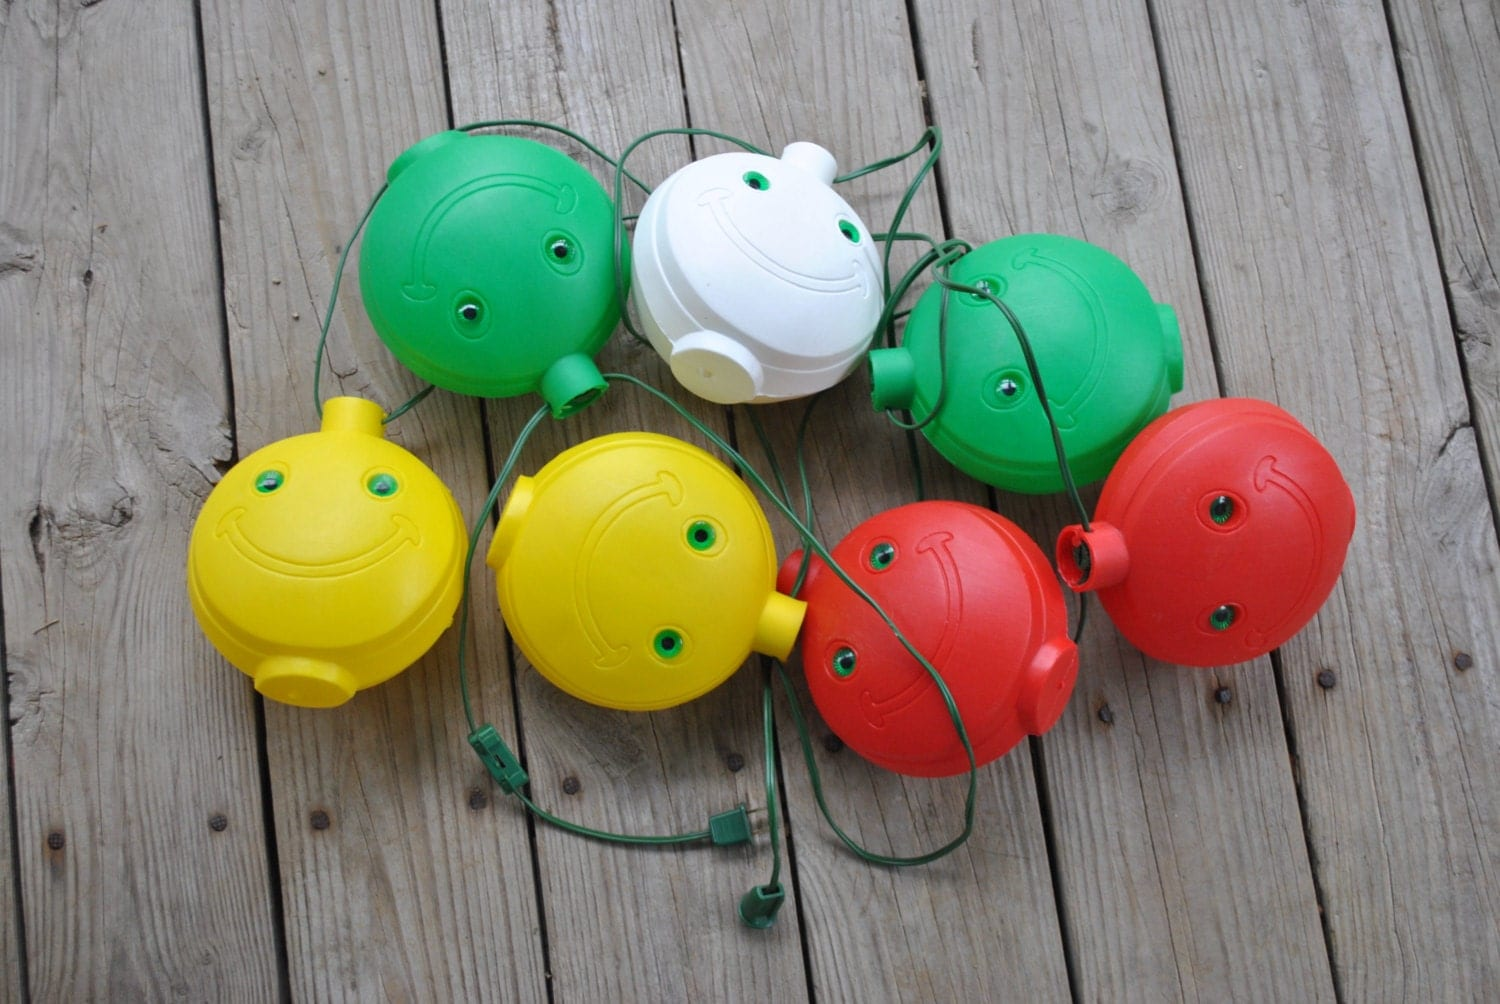 Vintage String Lights Etsy : Vintage Smiley Happy Face String Lights Retro Mold